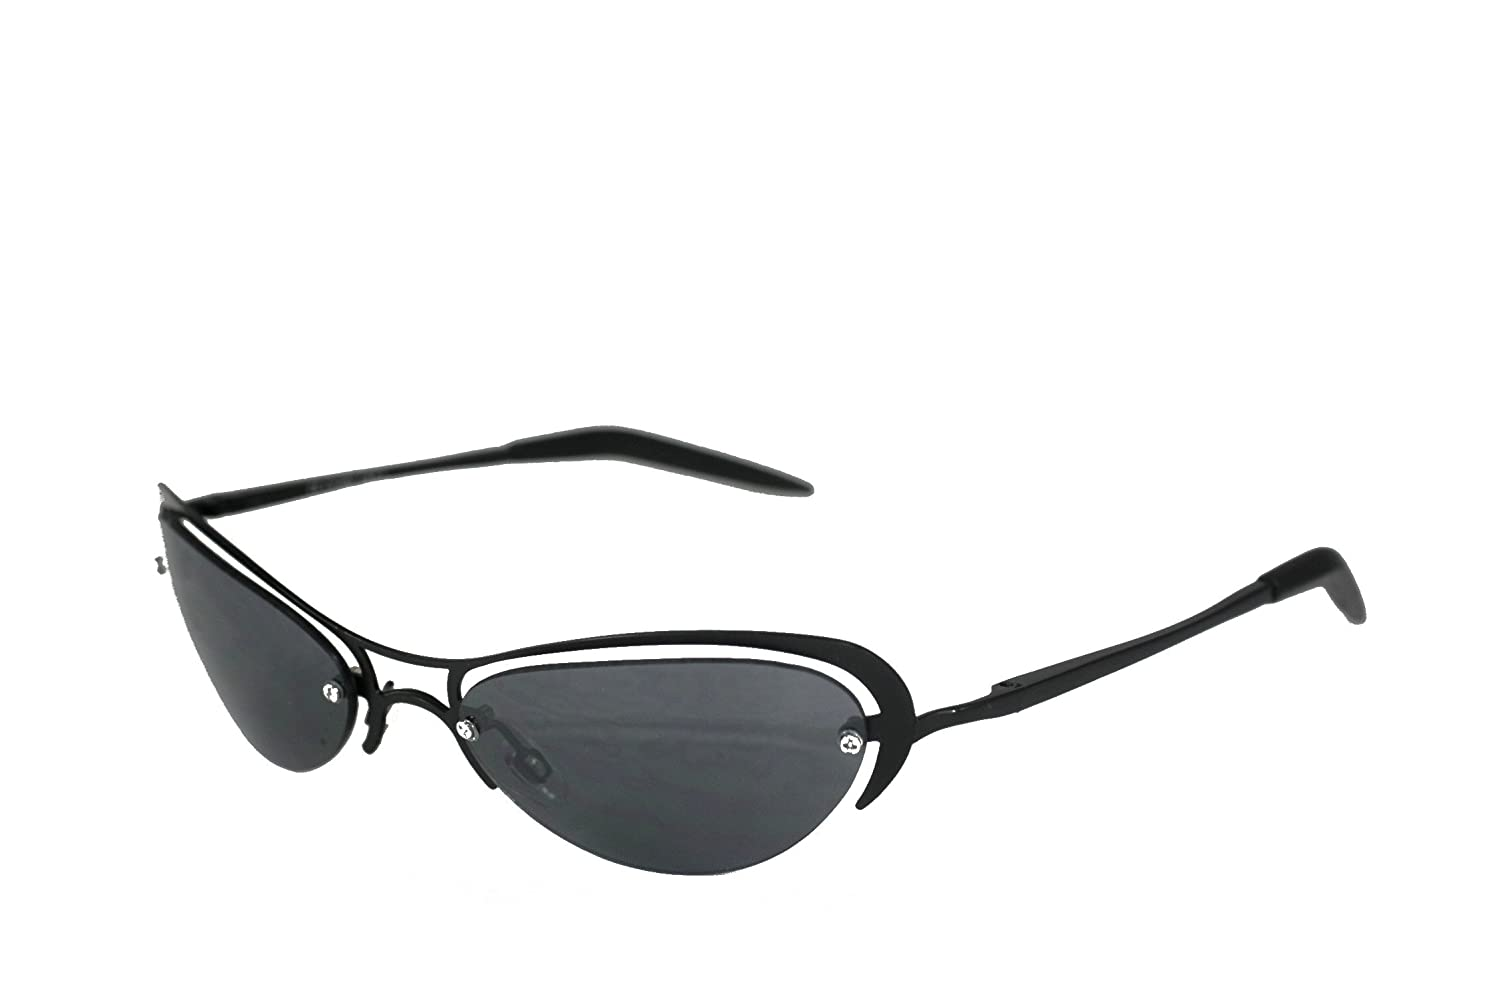 7b5da87d0d4 Matrix style Trinity Sunglasses black lense women s Men s Sunglasse 2084   Amazon.co.uk  Clothing